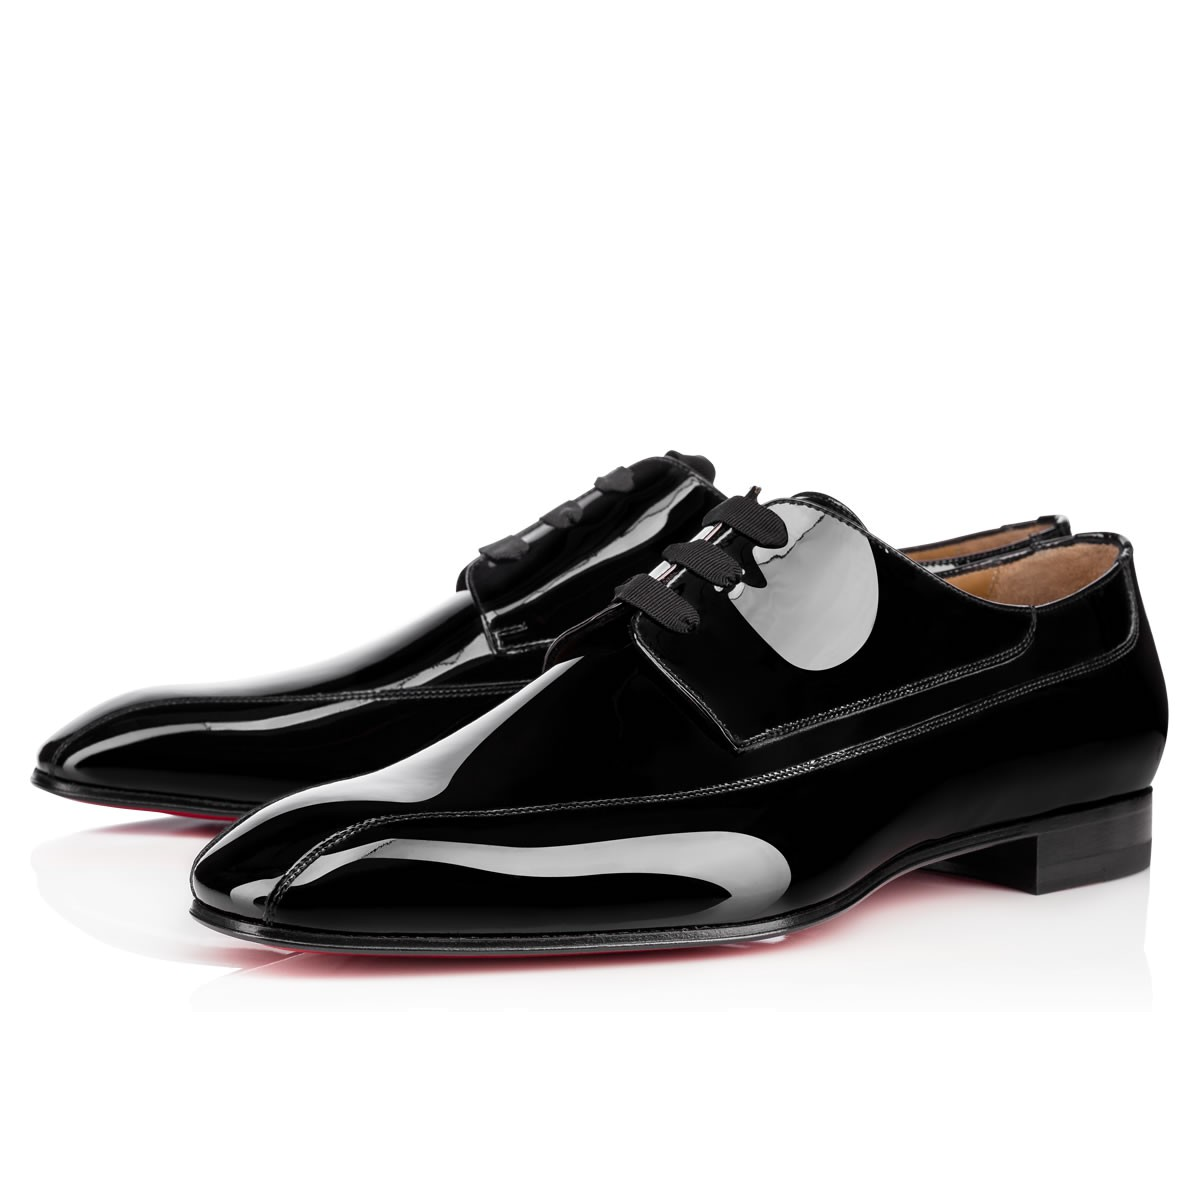 Orleaness Flat Black Patent Leather - Men Shoes - Christian Louboutin